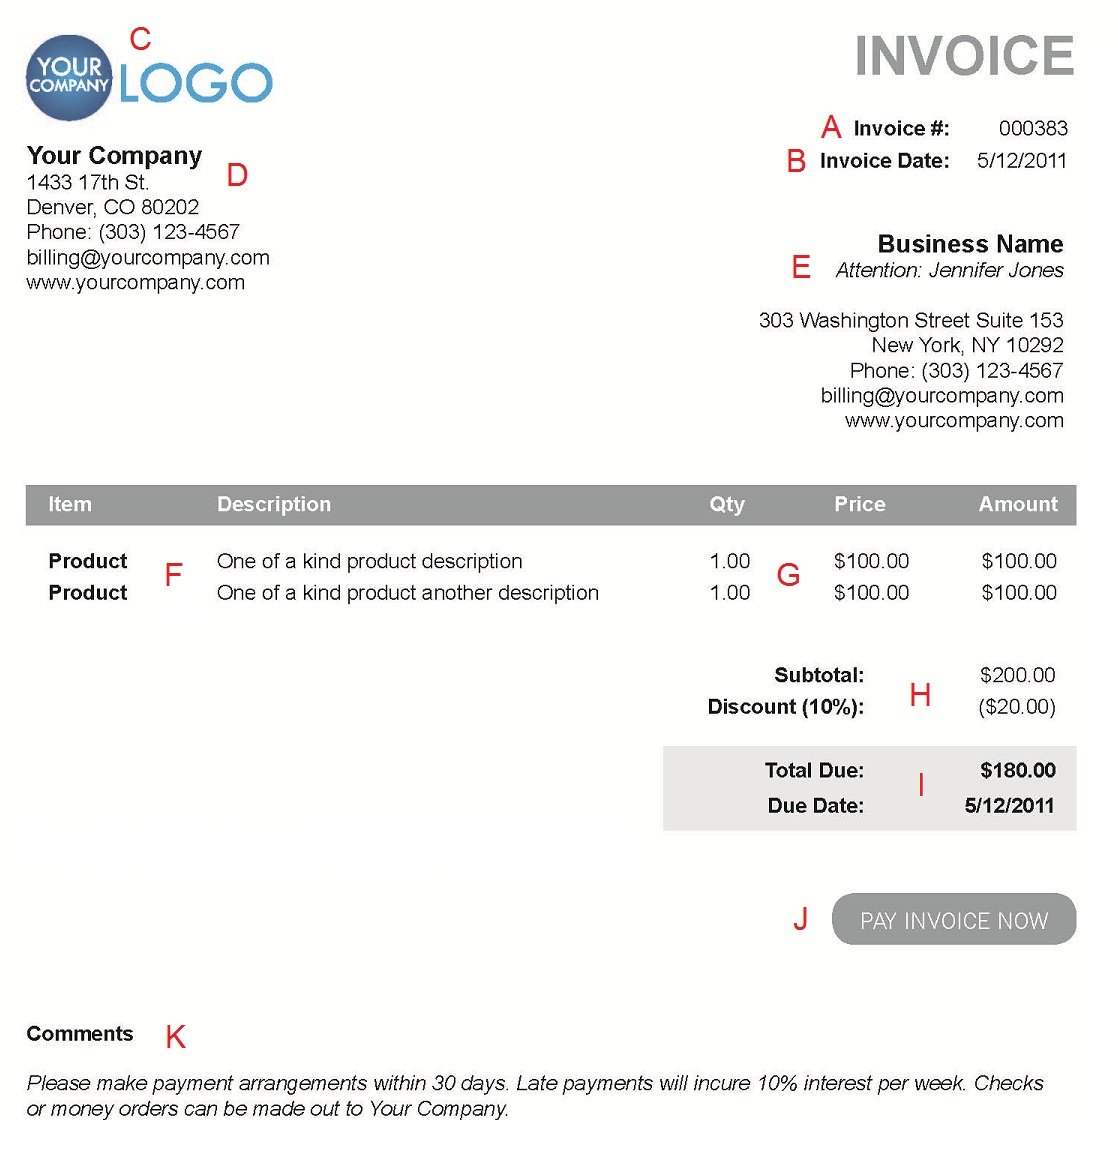 Angkajituus  Marvelous The  Different Sections Of An Electronic Payment Invoice With Hot A  With Extraordinary Sample Of An Invoice Statement Also How To Invoice A Company In Addition Invoice In Advance And Best Free Invoicing Software For Small Business As Well As Model Invoice Format Additionally Invoice Auditing From Paysimplecom With Angkajituus  Hot The  Different Sections Of An Electronic Payment Invoice With Extraordinary A  And Marvelous Sample Of An Invoice Statement Also How To Invoice A Company In Addition Invoice In Advance From Paysimplecom